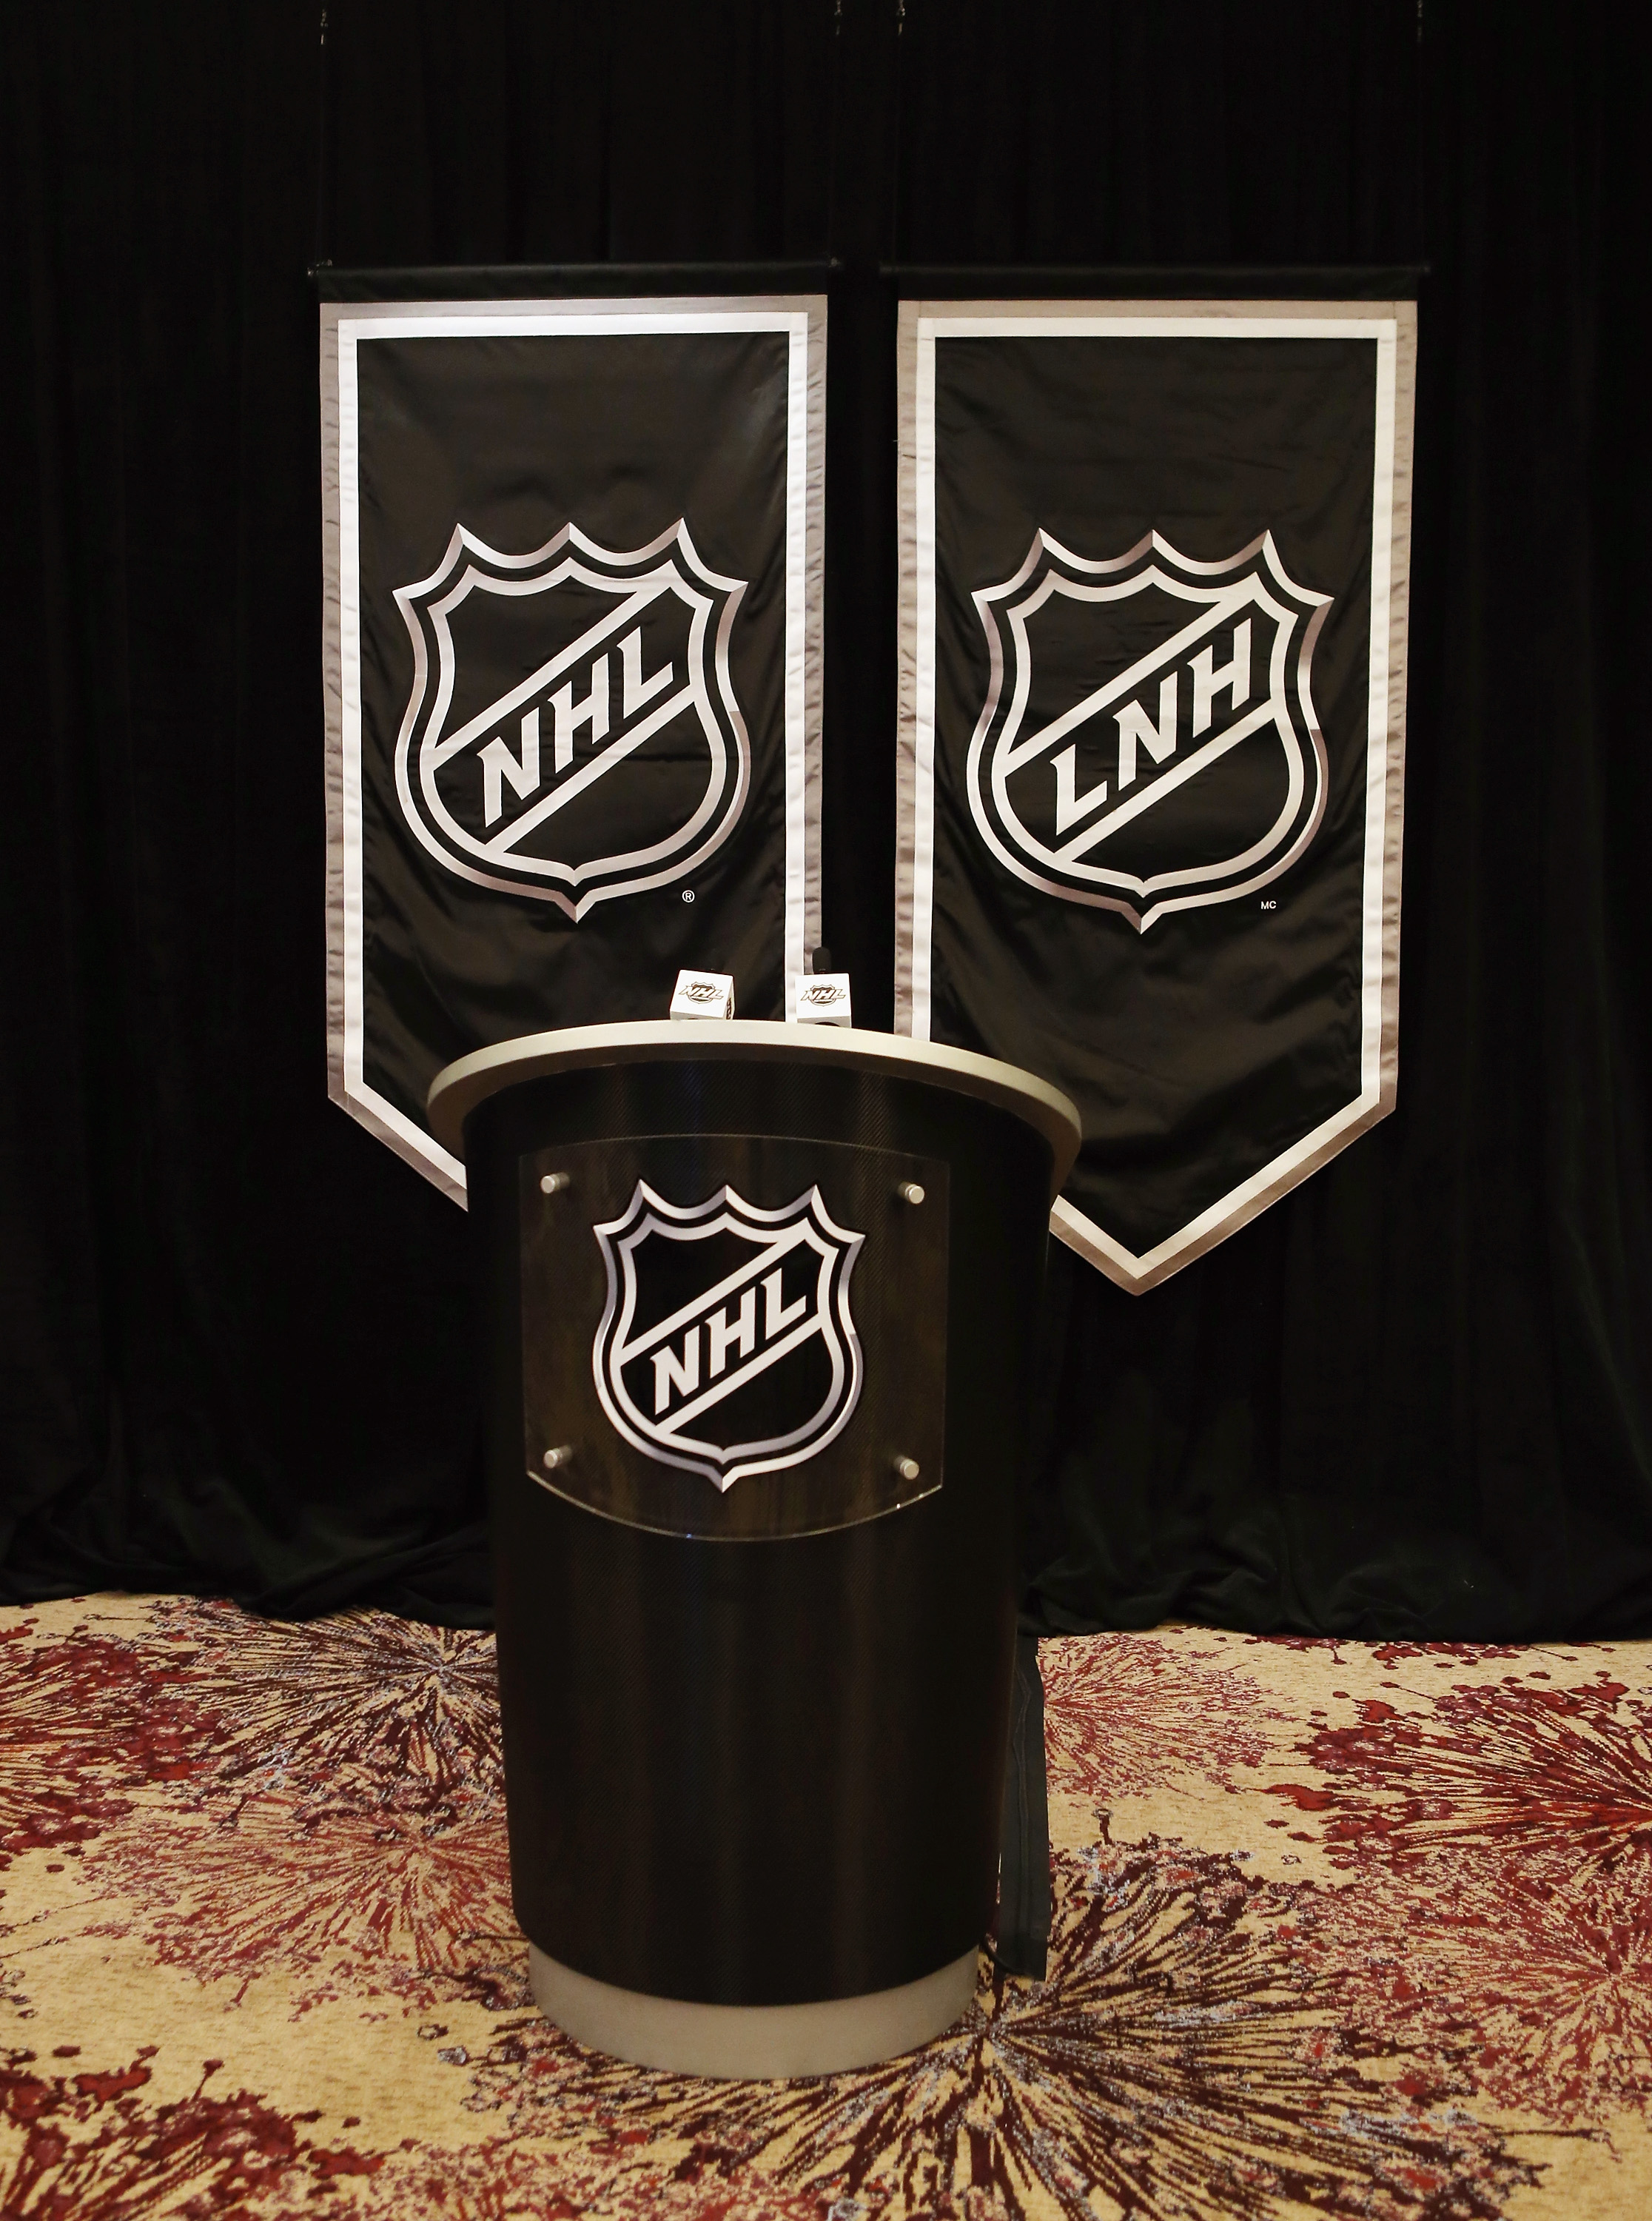 Lacking an idea of what photo to use for this social media inspired article, we'll just use the NHL logo and podium.